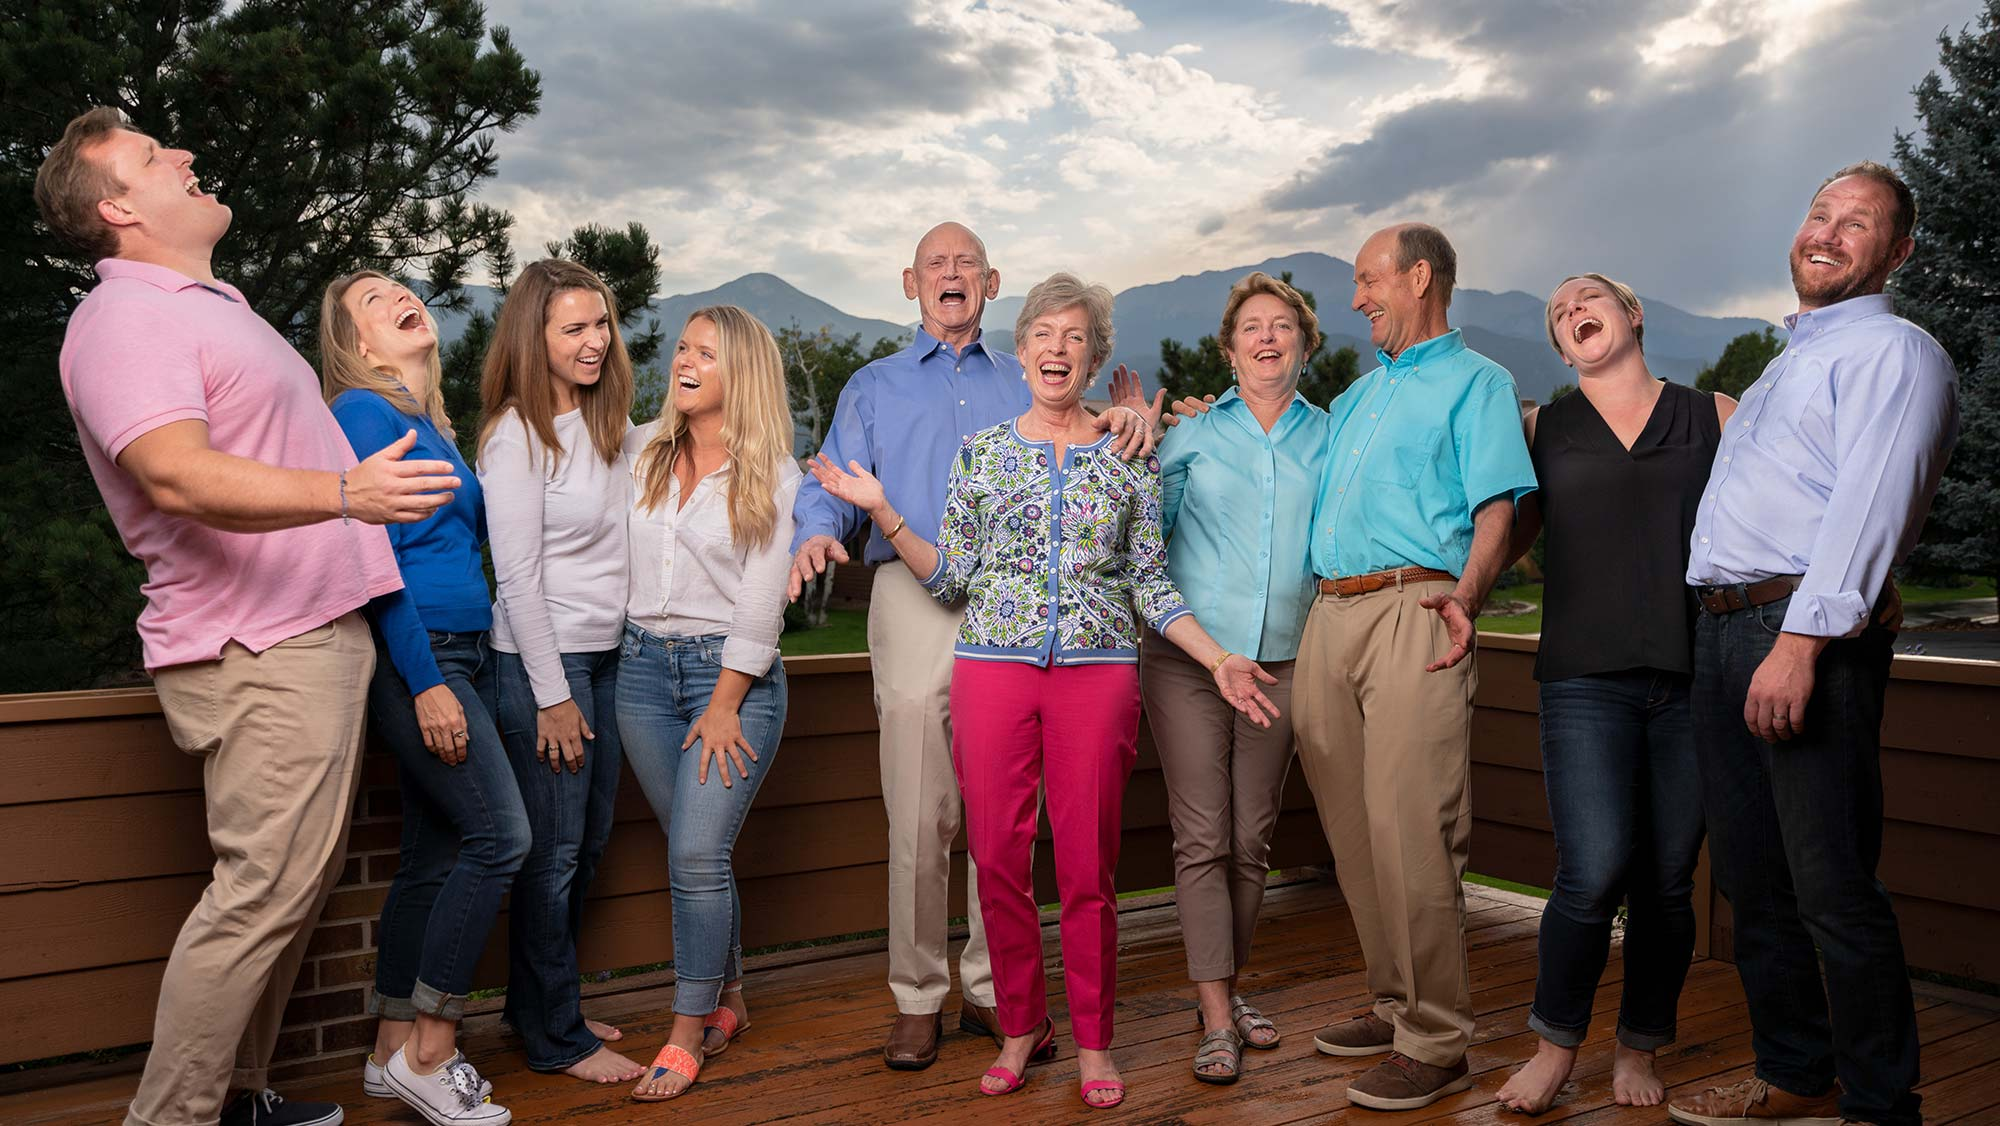 Large family laughs and bellows together in a big family portrait